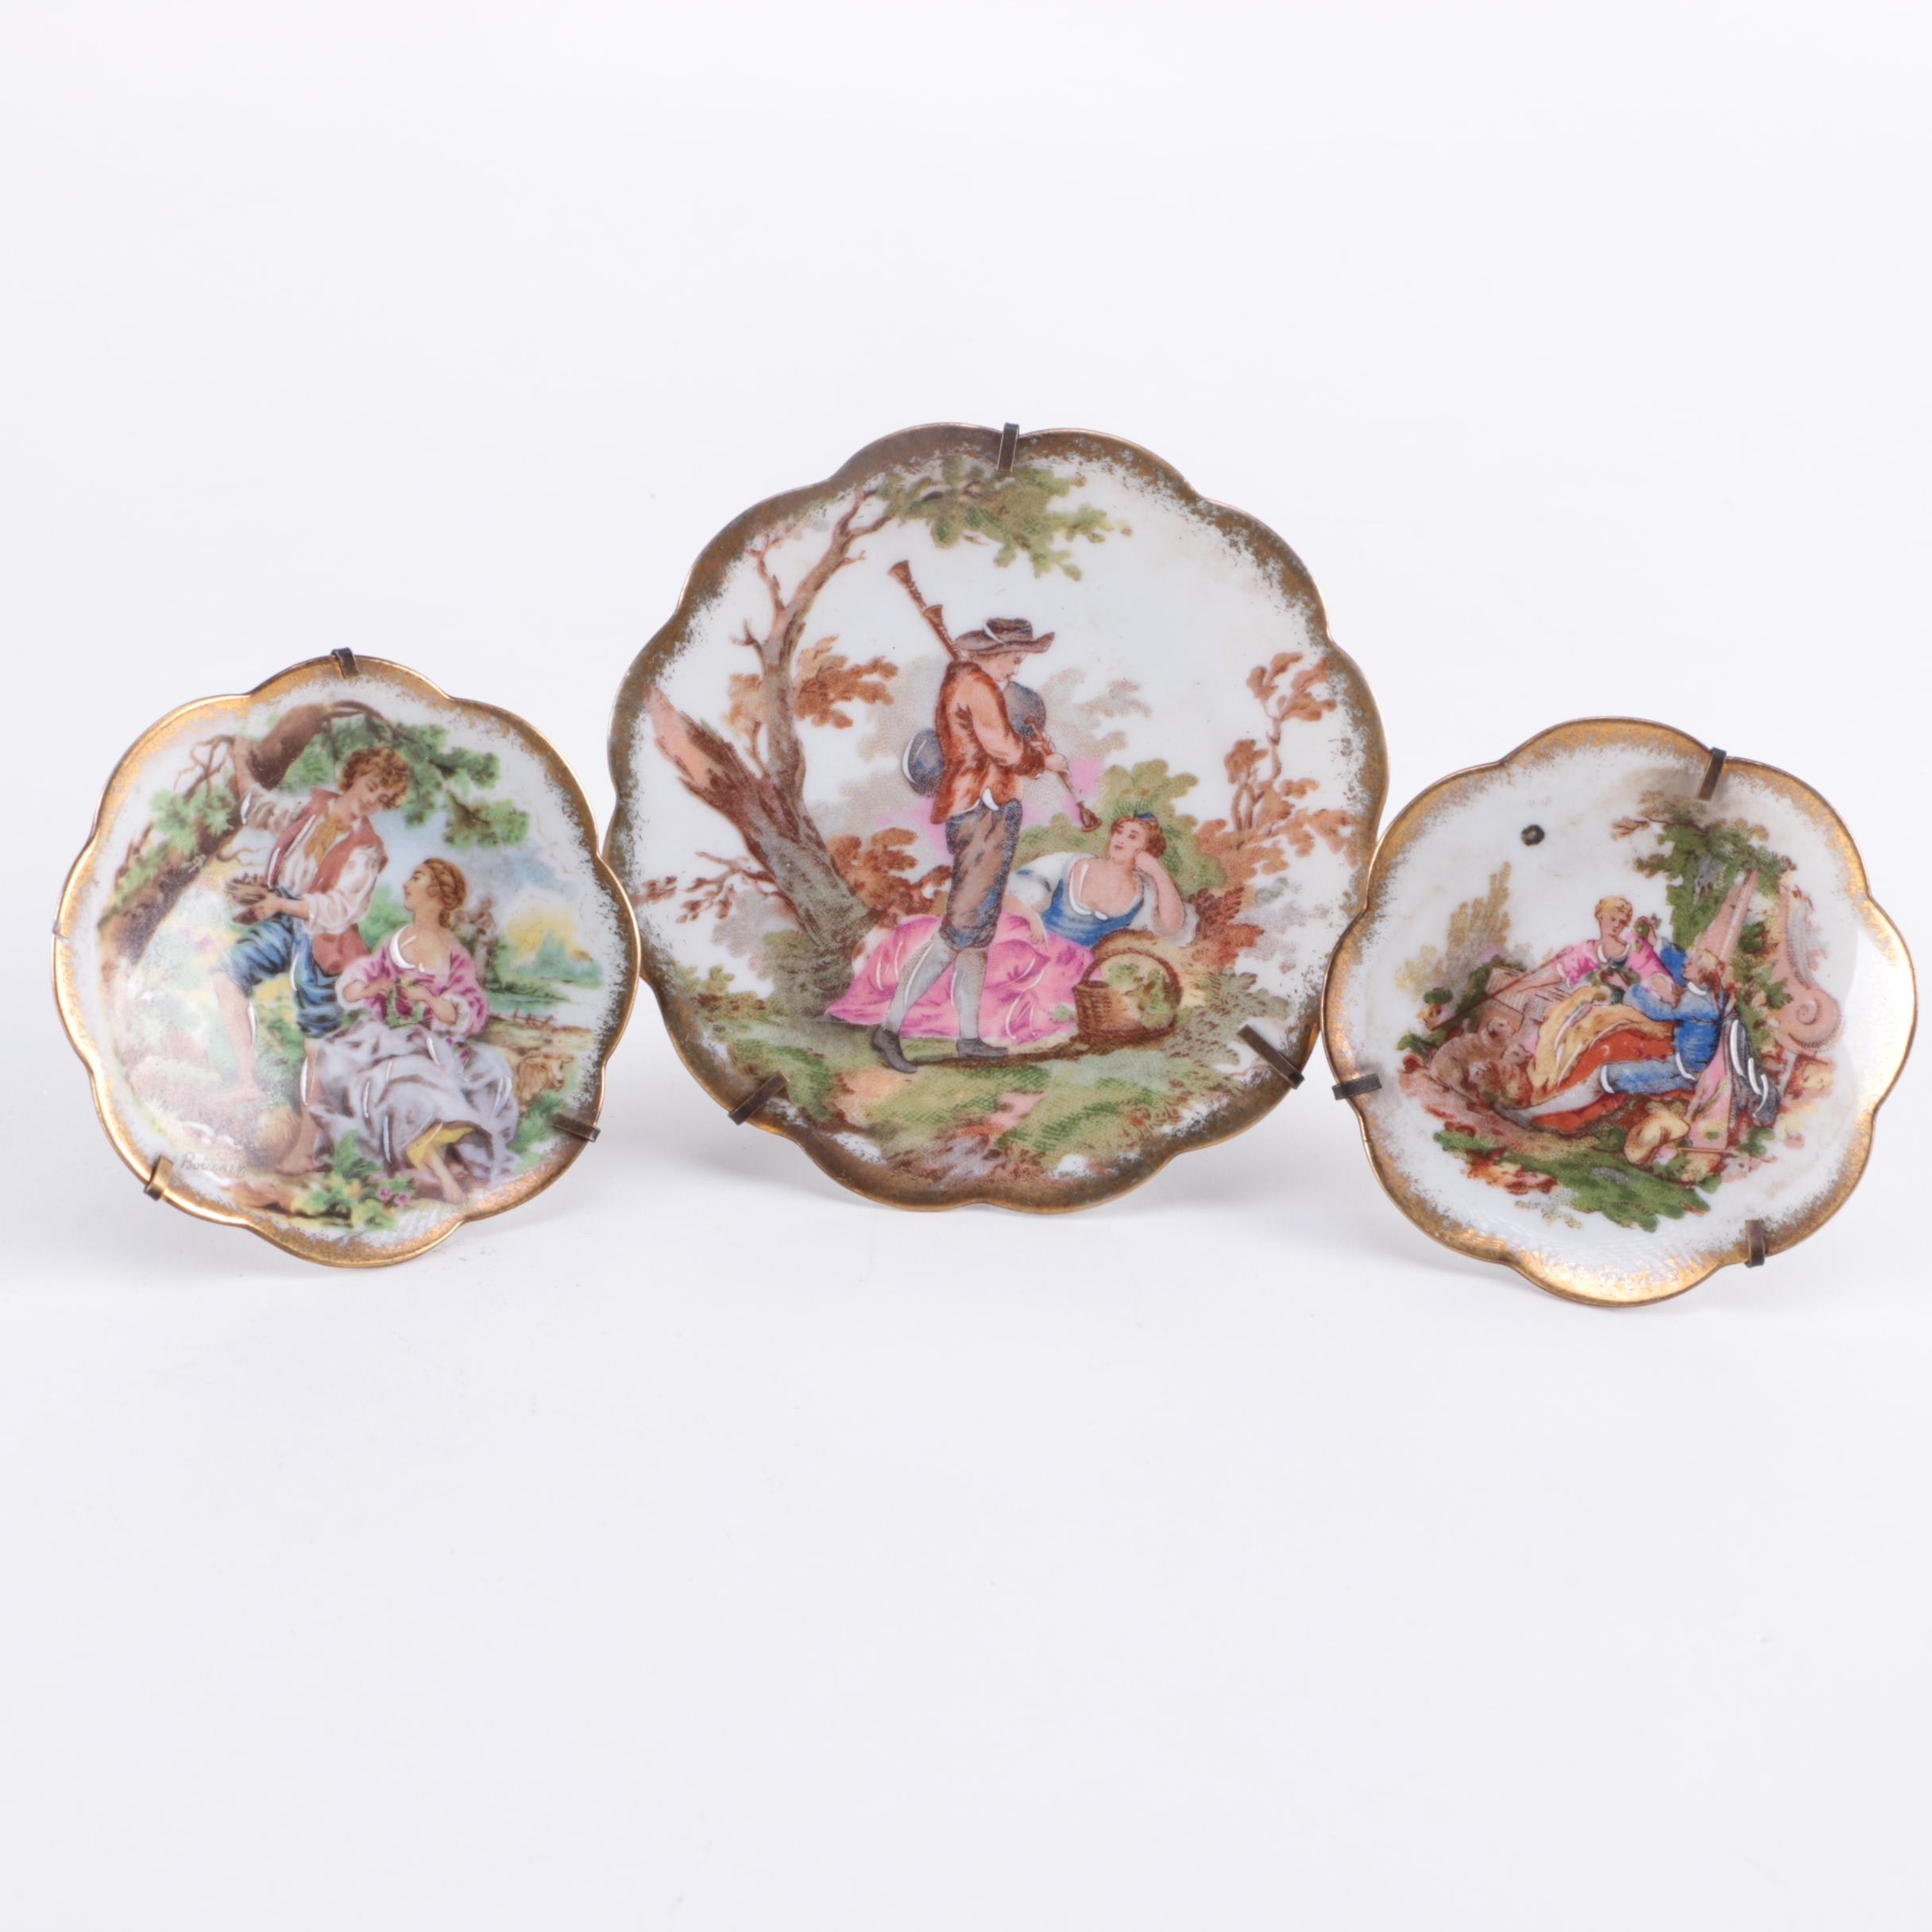 Porcelaine d'Art Decorative Limoges Plates